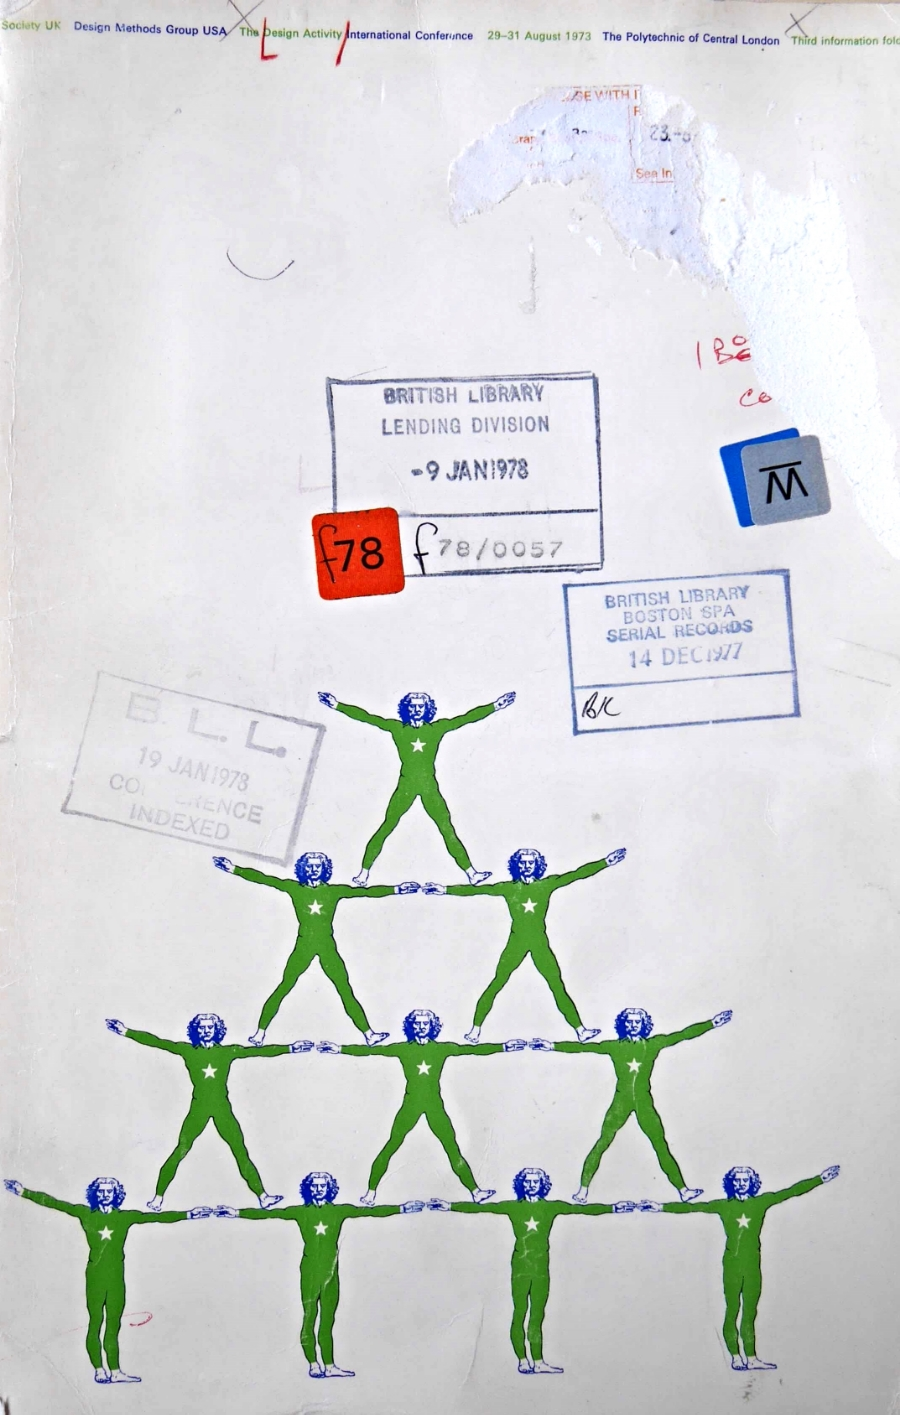 "The cover of the ""Third Information Folder"" of the DRS/DMG Design Activity International Conference, 29-31 August 1973. Not many copies of this folder appear to have survived. A ""Second Information Folder"" has the same motif as a tightrope walker, in blue, holding an umbrella. There may have been a ""First Information Folder"" but this is as yet unseen. A poster for the conference has a juggler (in red)"